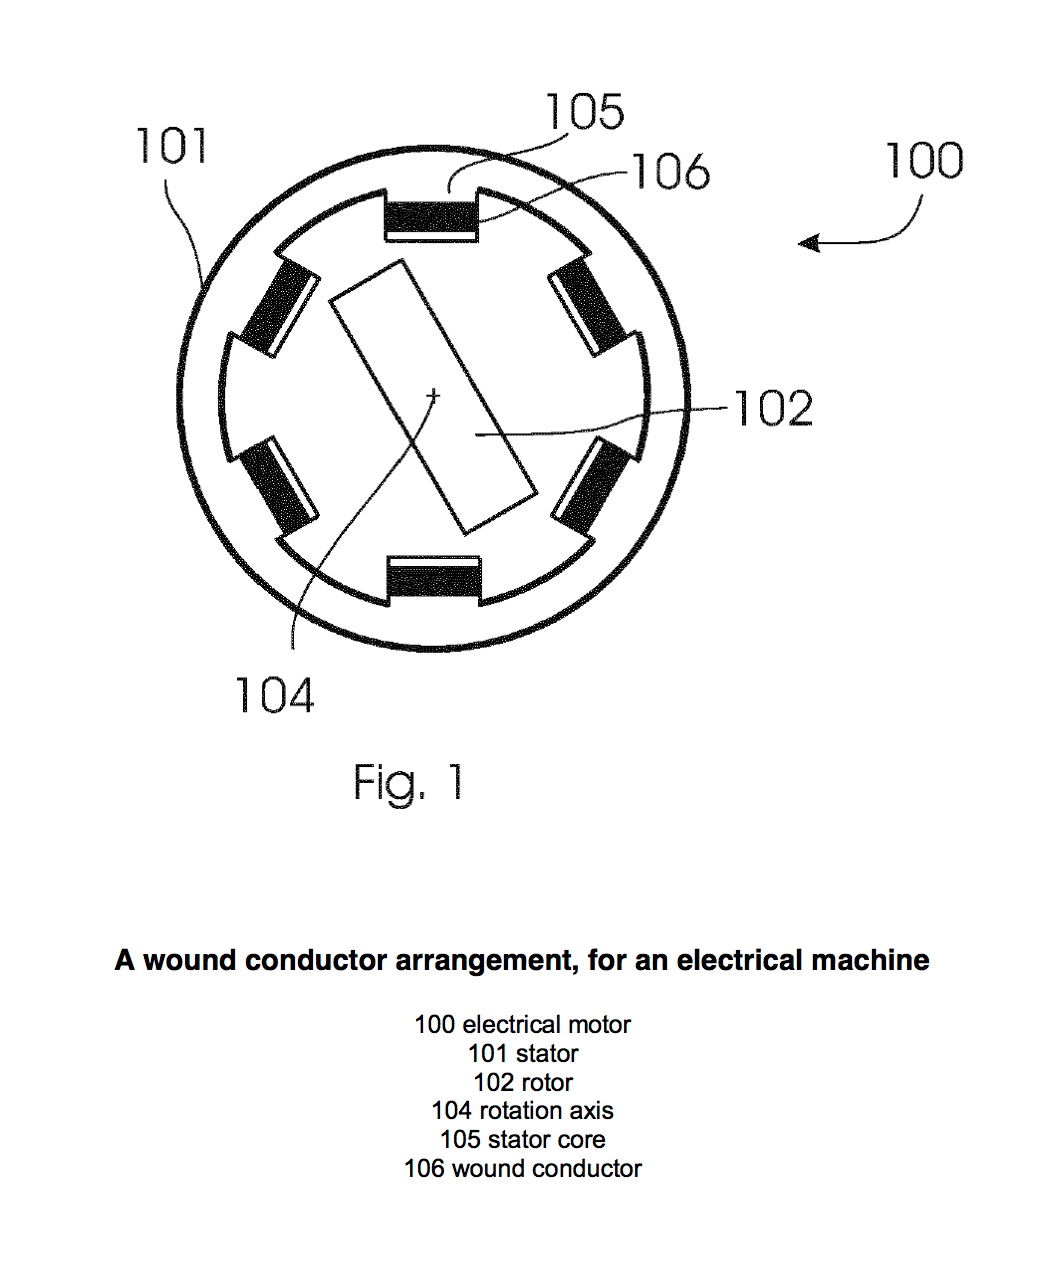 Diamond Based Winding Insulation For Electrical Machines